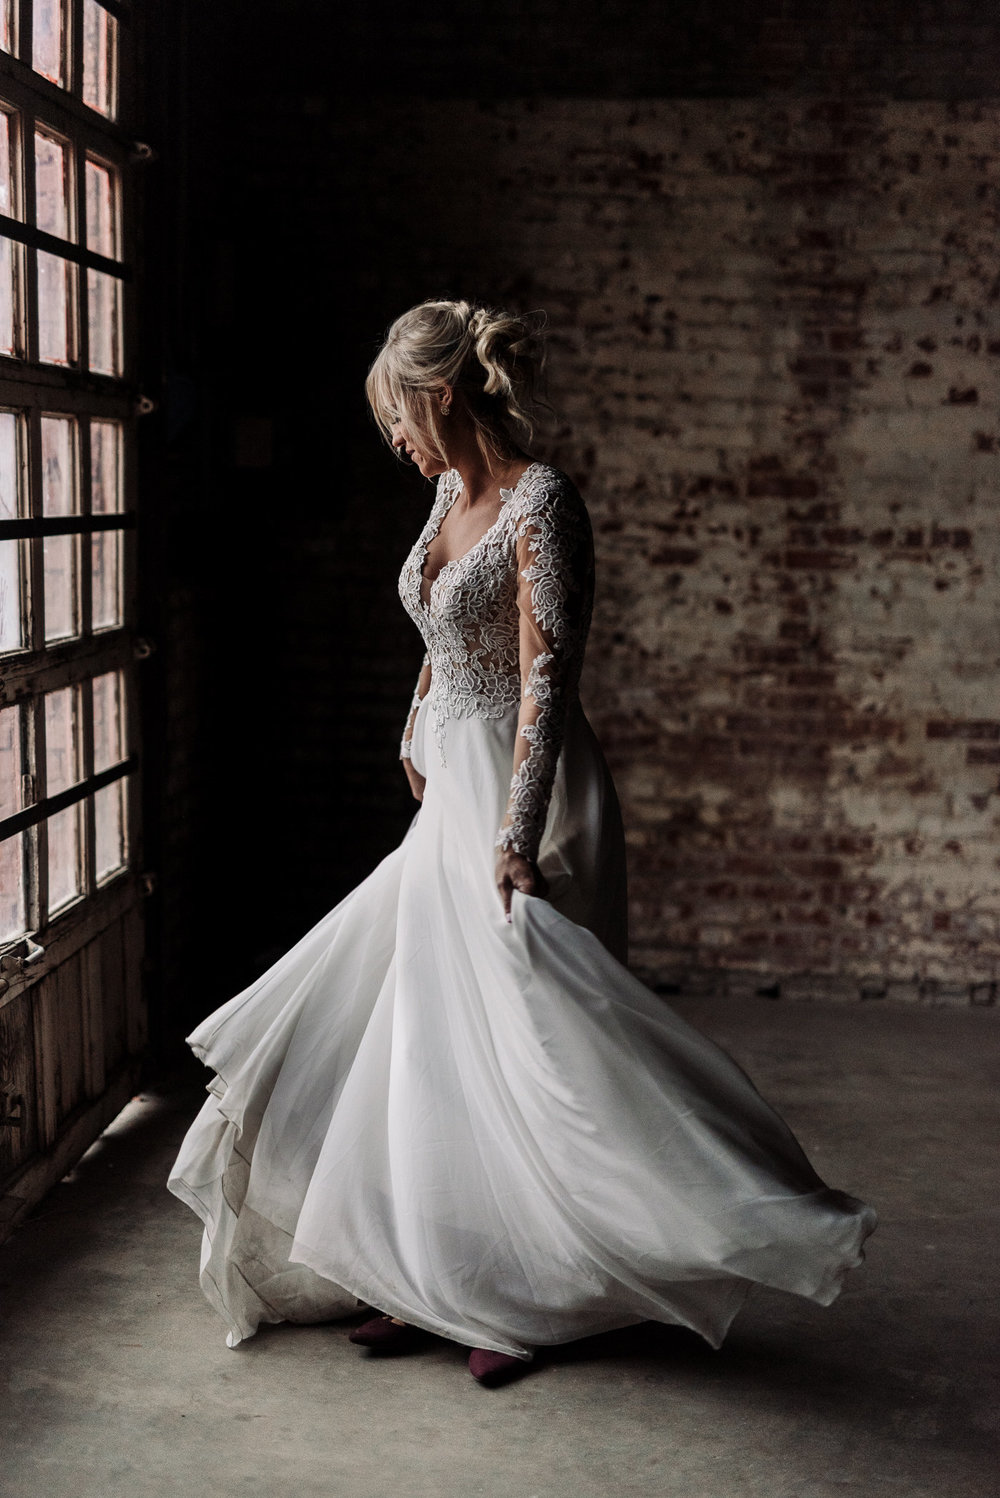 Prescott Bridal | Oklahoma City Wedding Dresses and Gowns - Winter Wedding Styled Shoot